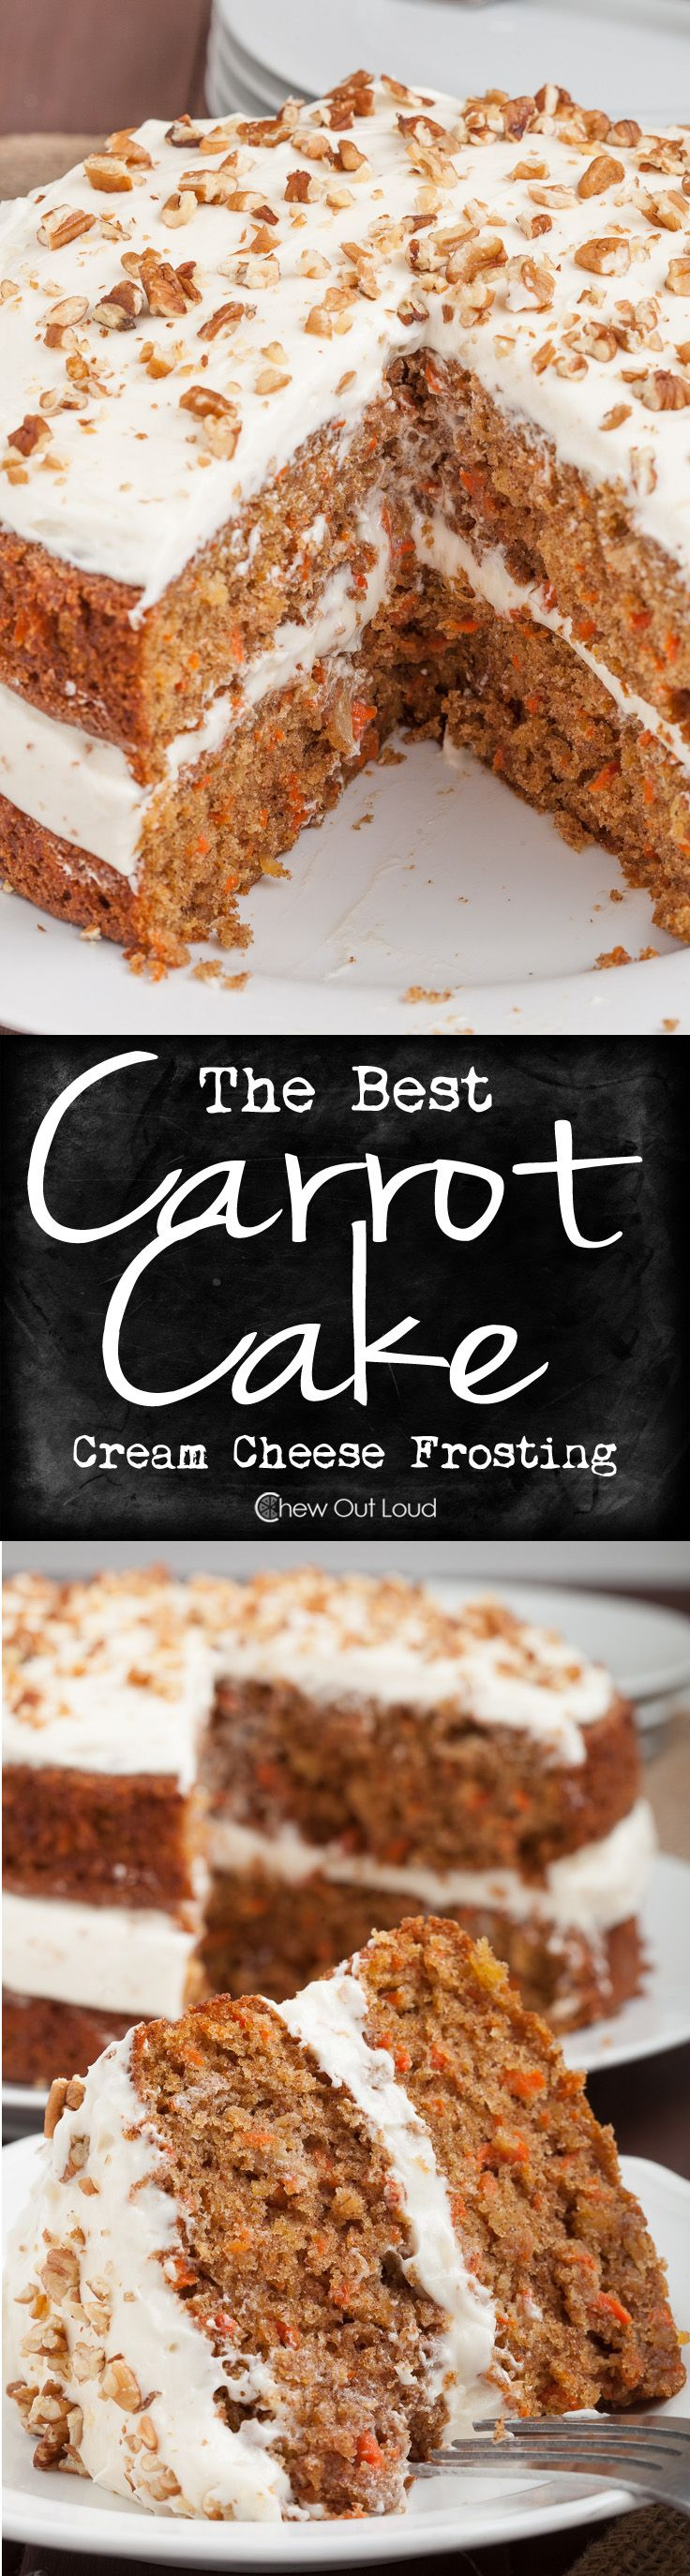 Best Carrot Cake with Cream Cheese Frosting - Truly the yummiest carrot cake we've ever devoured. Perfect for spring, holidays, birthdays, or weekends. (best cake recipes)